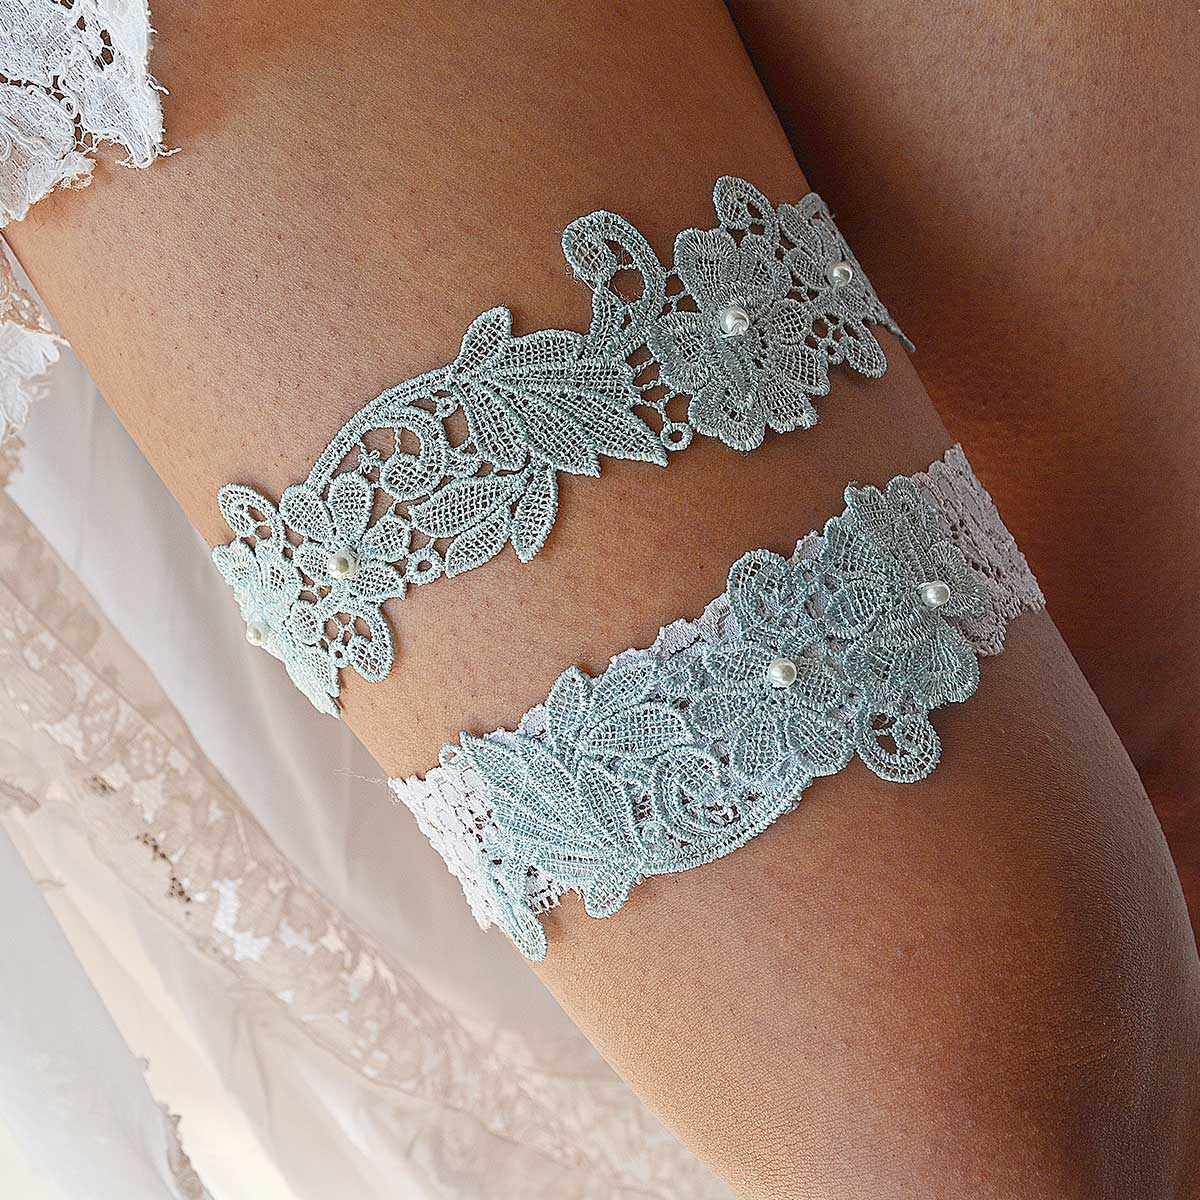 White Bridal Garter With Aqua Blue Flower Applique & Pearls - Wedding Garter - SuzannaM Designs